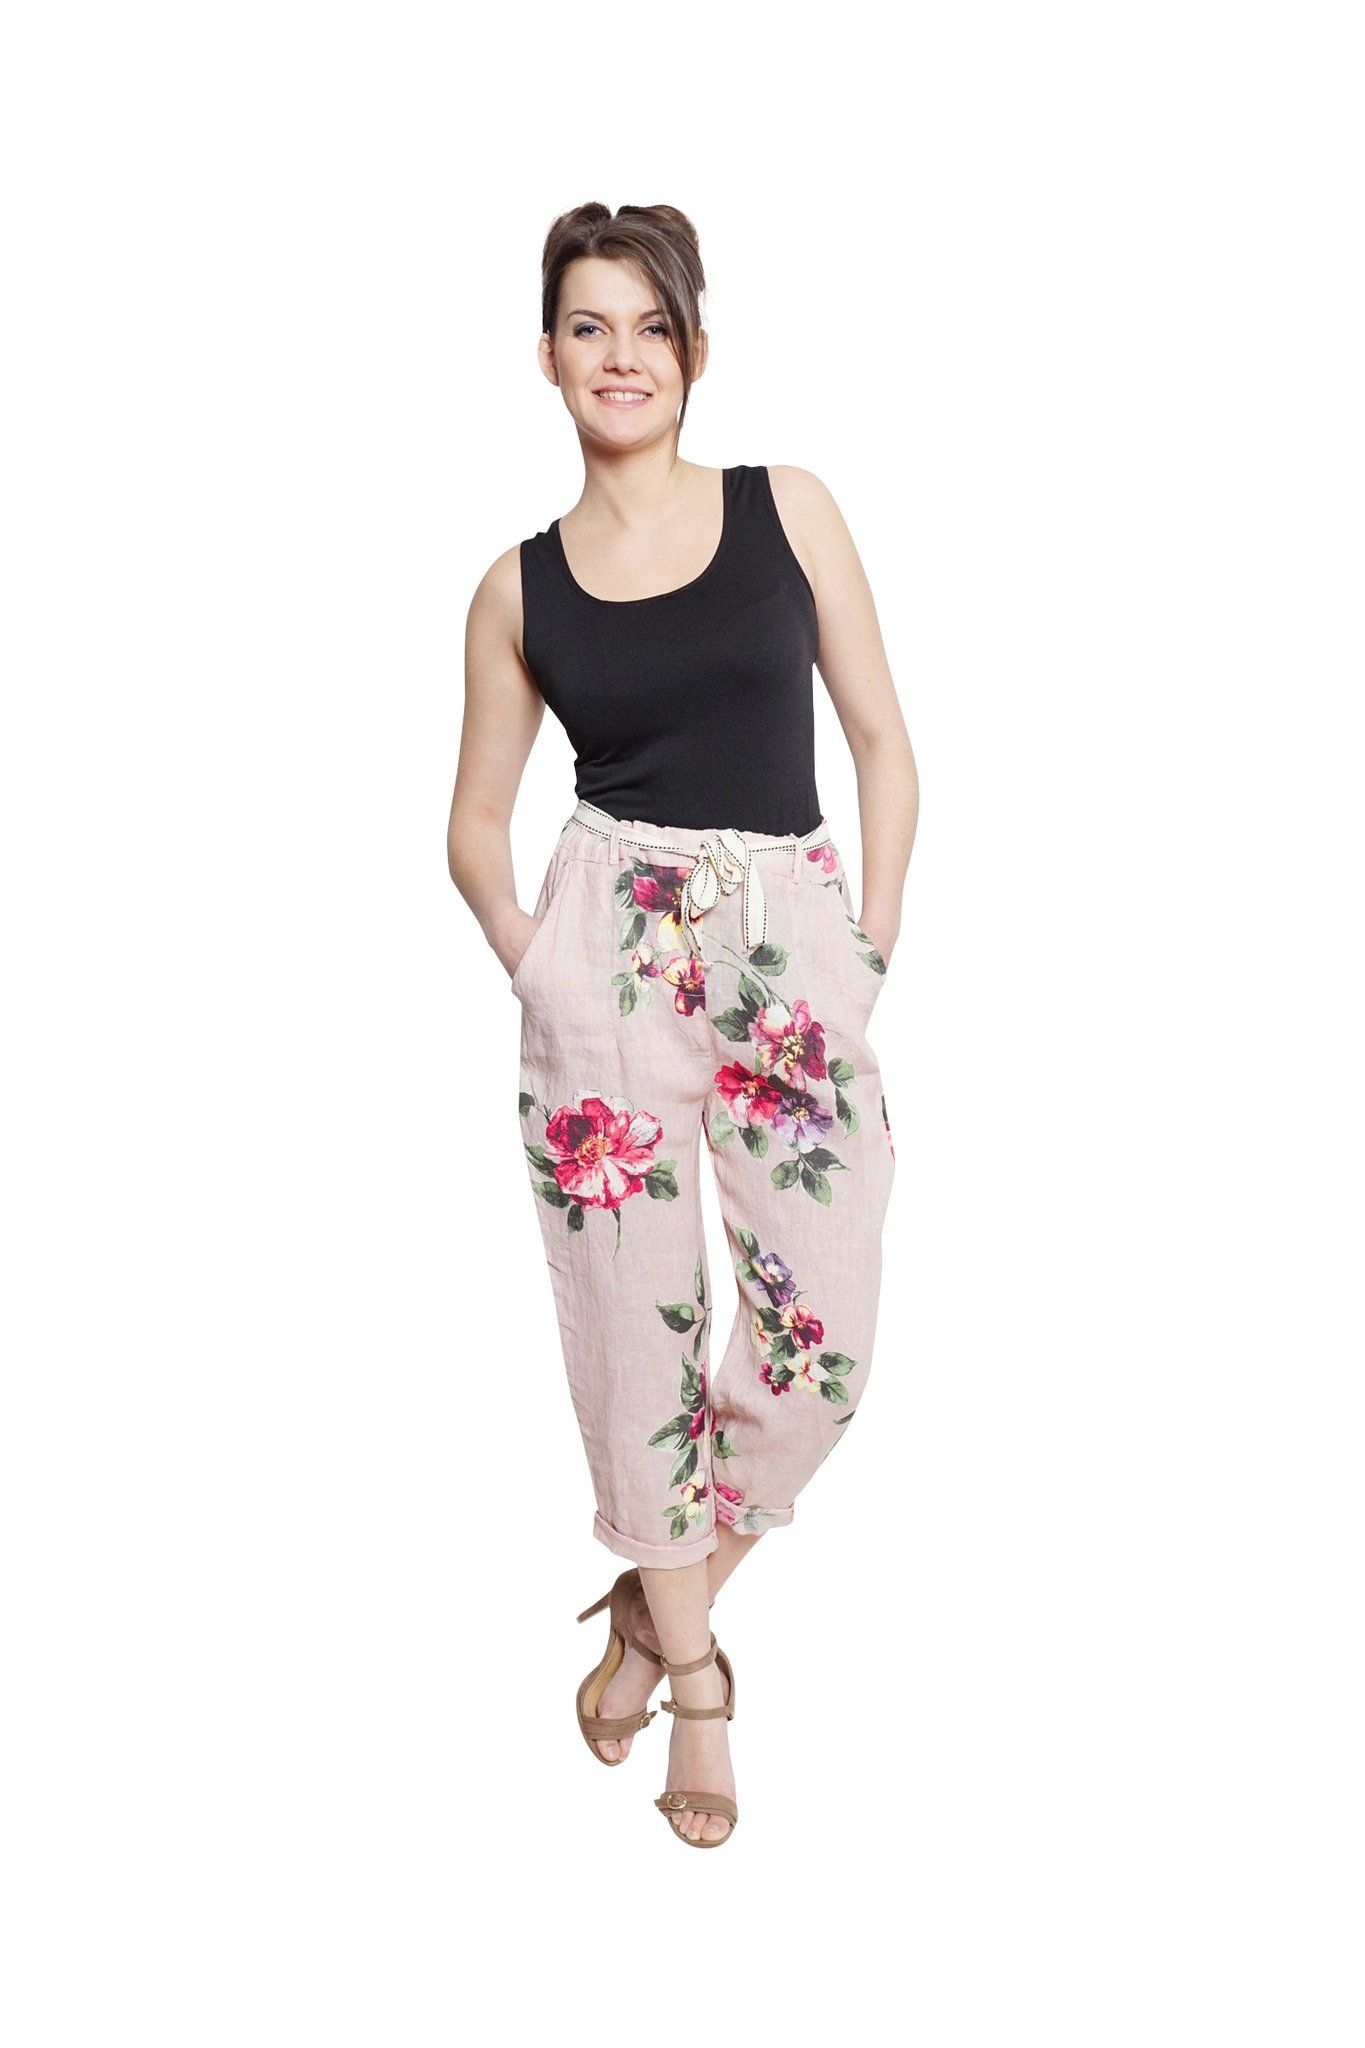 9f591527873 Bella Amore - Linen Floral Capris Italian Linen at All Things Being Eco  Sustainable Womens Fashion and Clothing